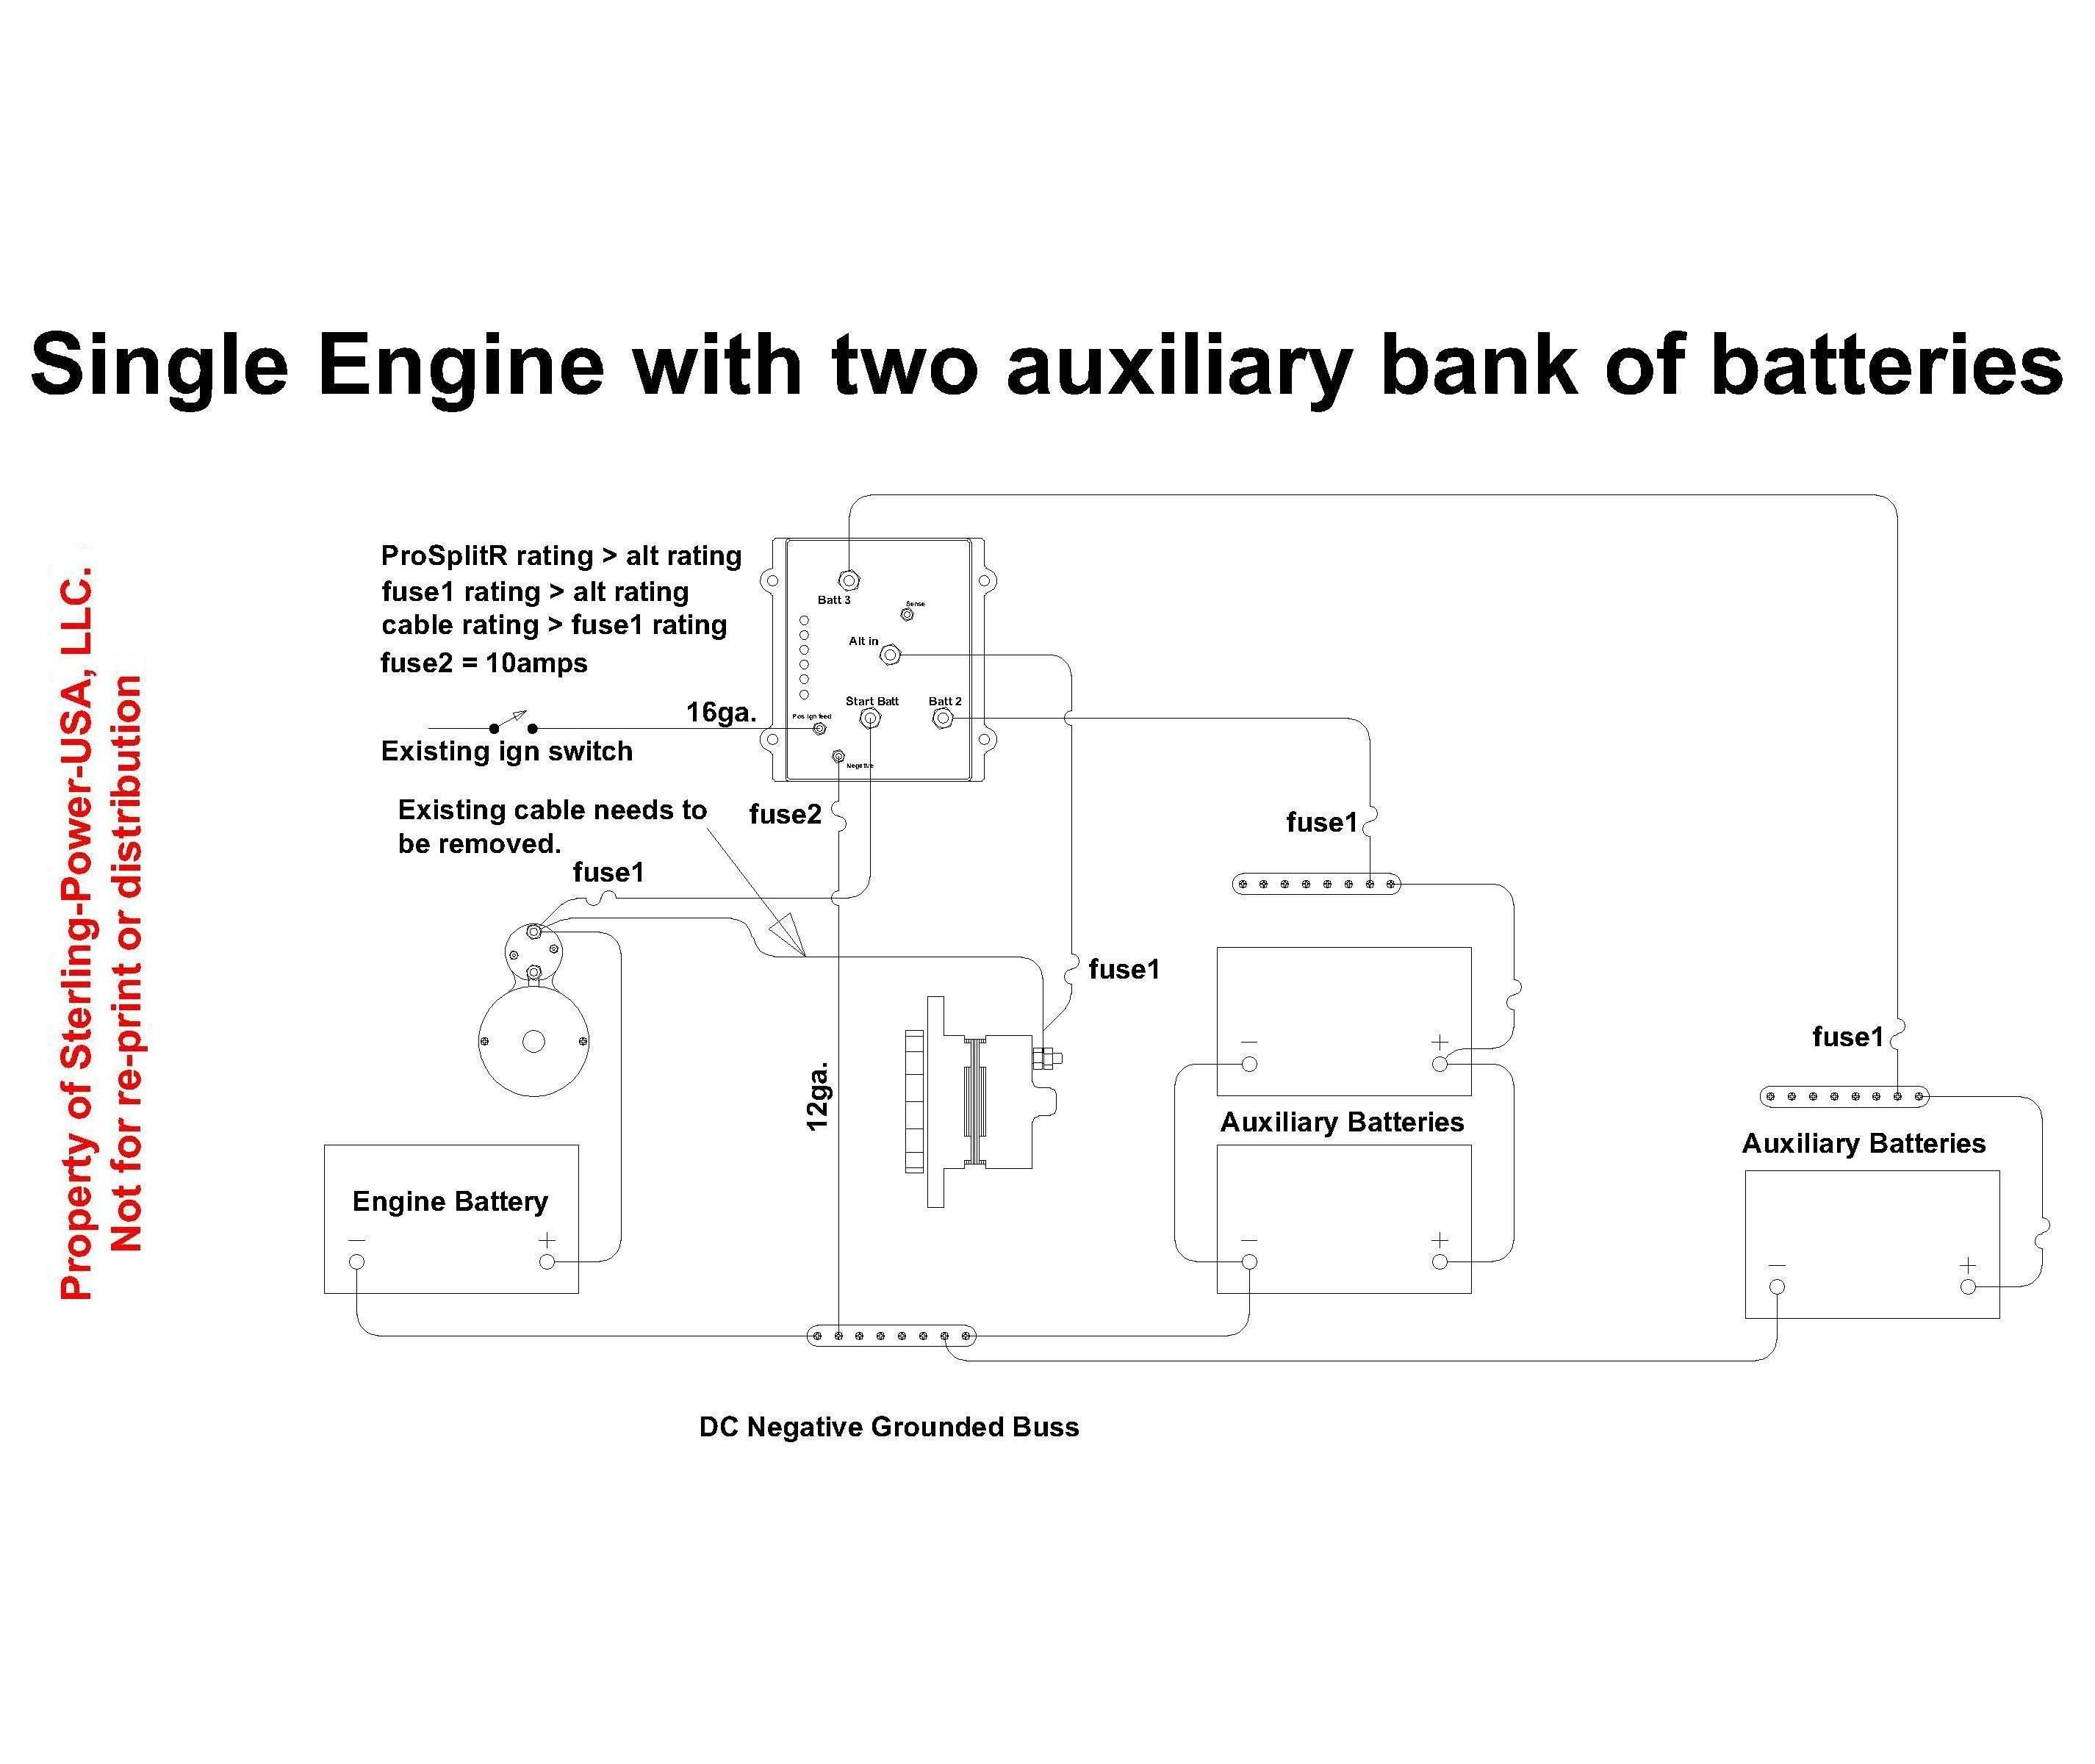 battery isolator wiring diagram strat bridge tone control diagrams literature for pro charge ultra marine a sterling power prosplit r zero drop with 2 input and 3 outputs